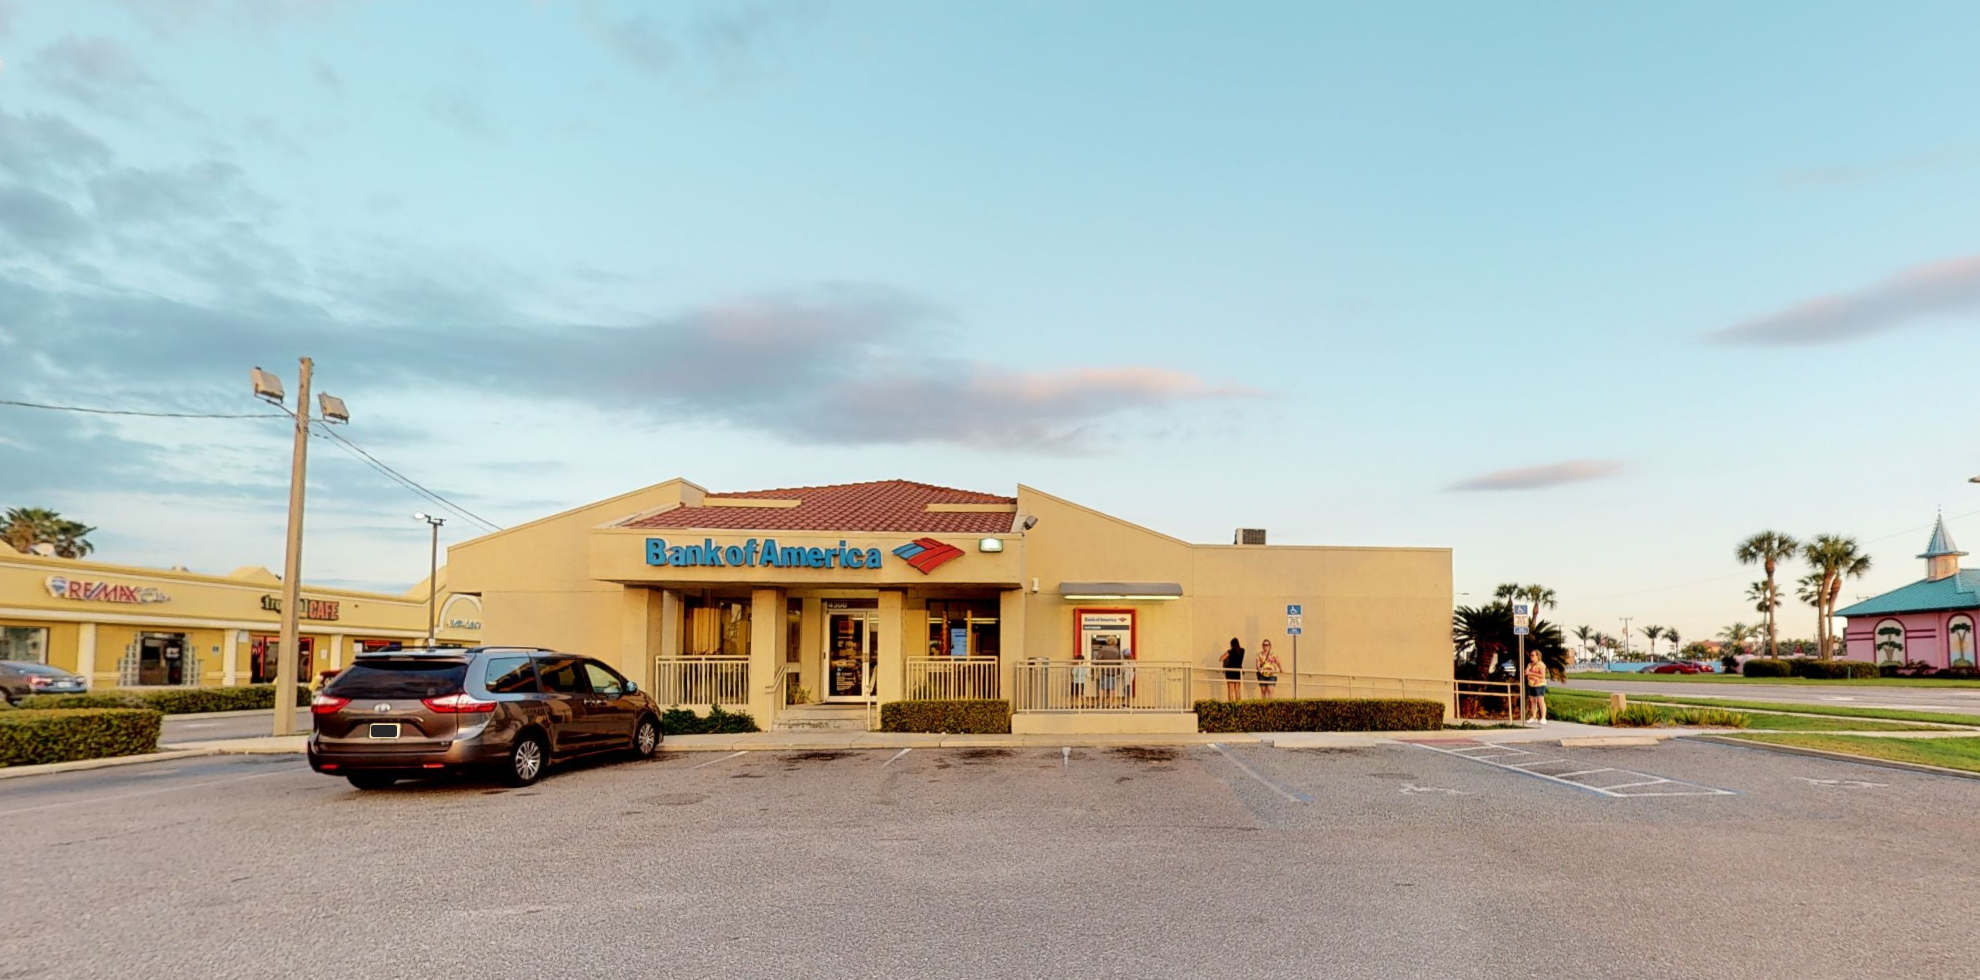 Bank of America financial center with drive-thru ATM | 4300 N Atlantic Ave, Cocoa Beach, FL 32931